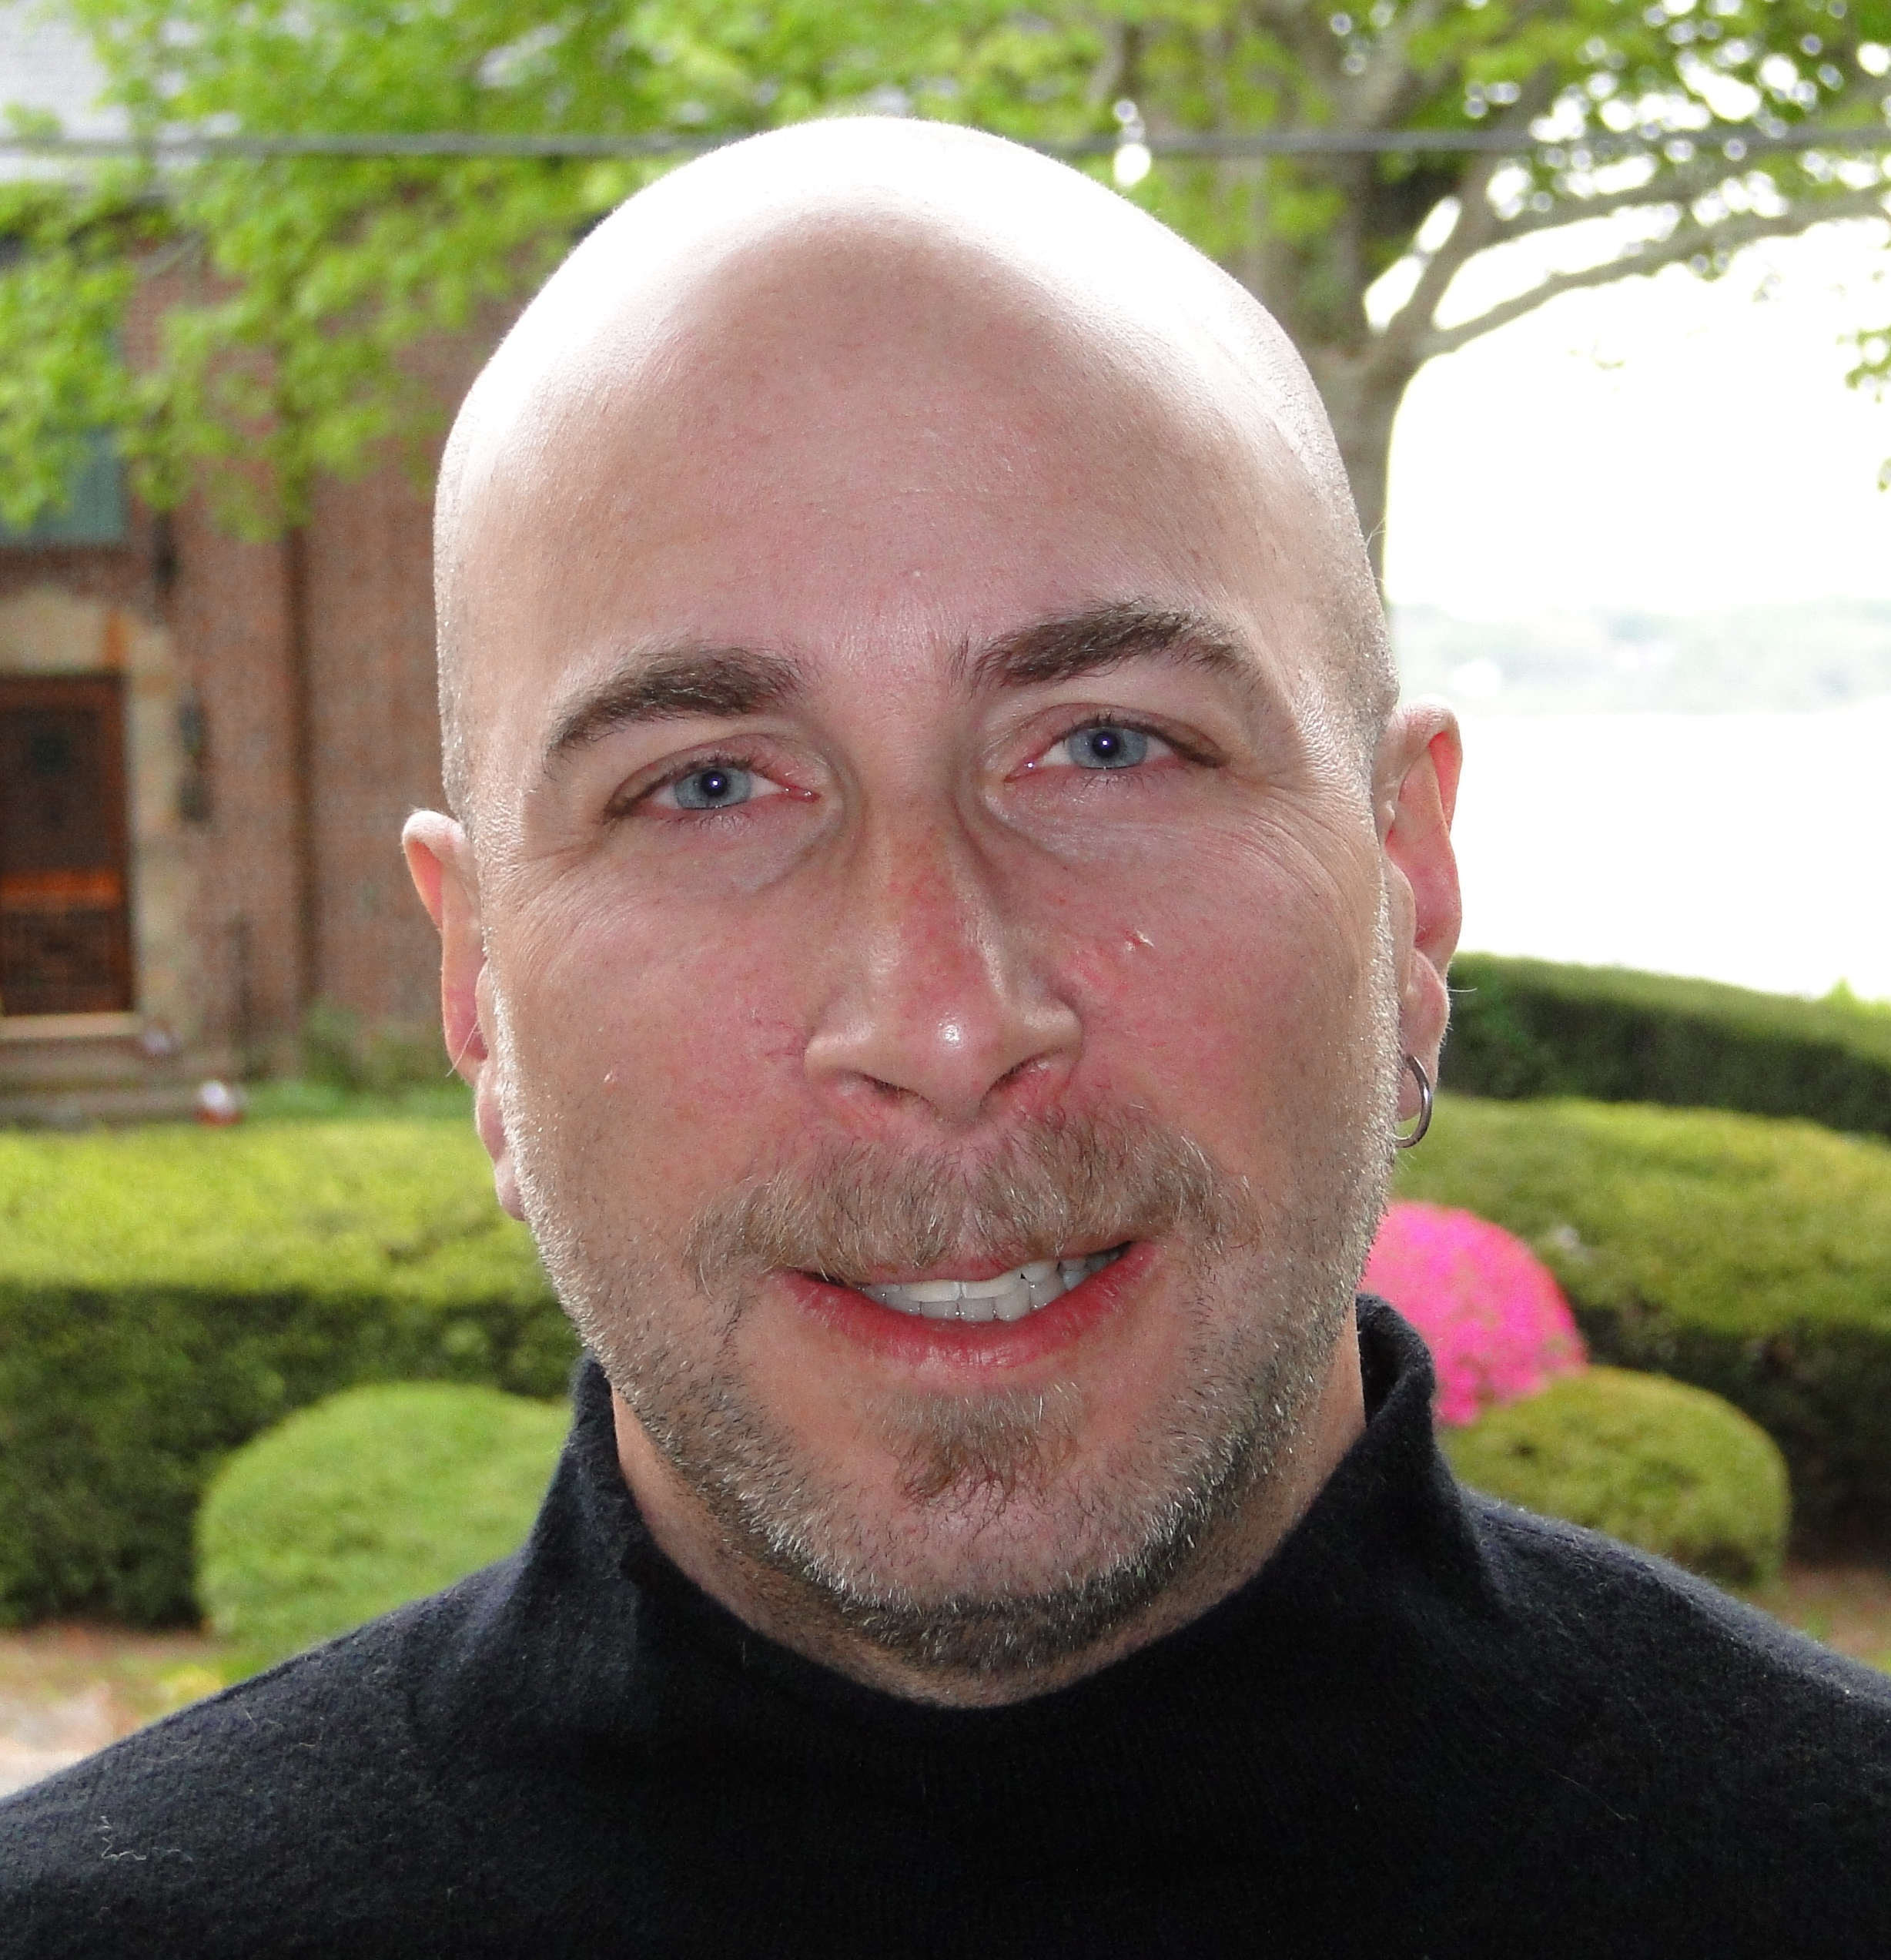 speakers medical futures lab jay baruch md is an assistant professor of emergency medicine at the alpert medical school at brown university where he also serves as the director of the